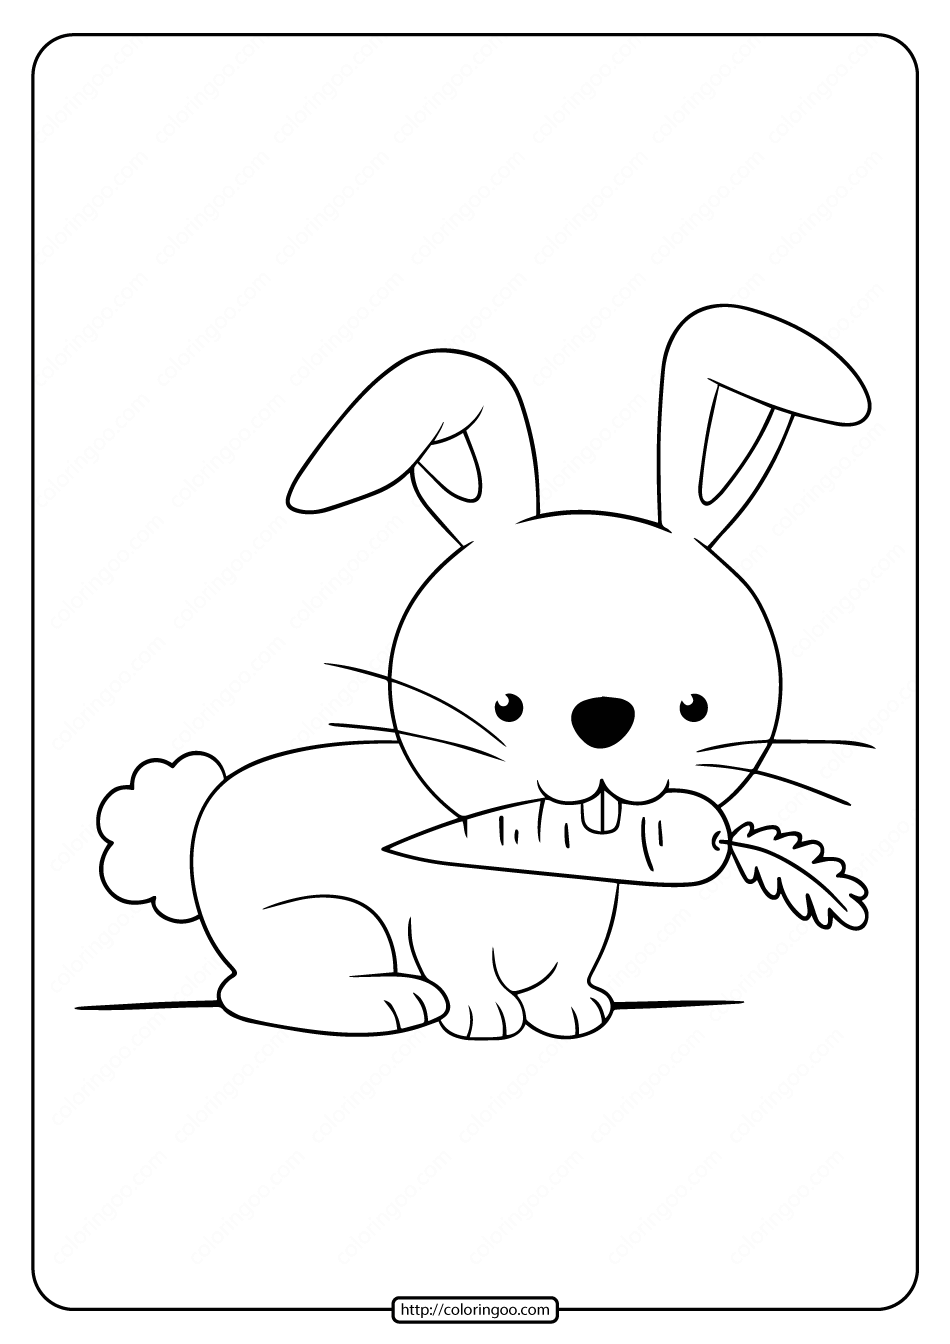 Printable Rabbit Eat Carrot Coloring Pages